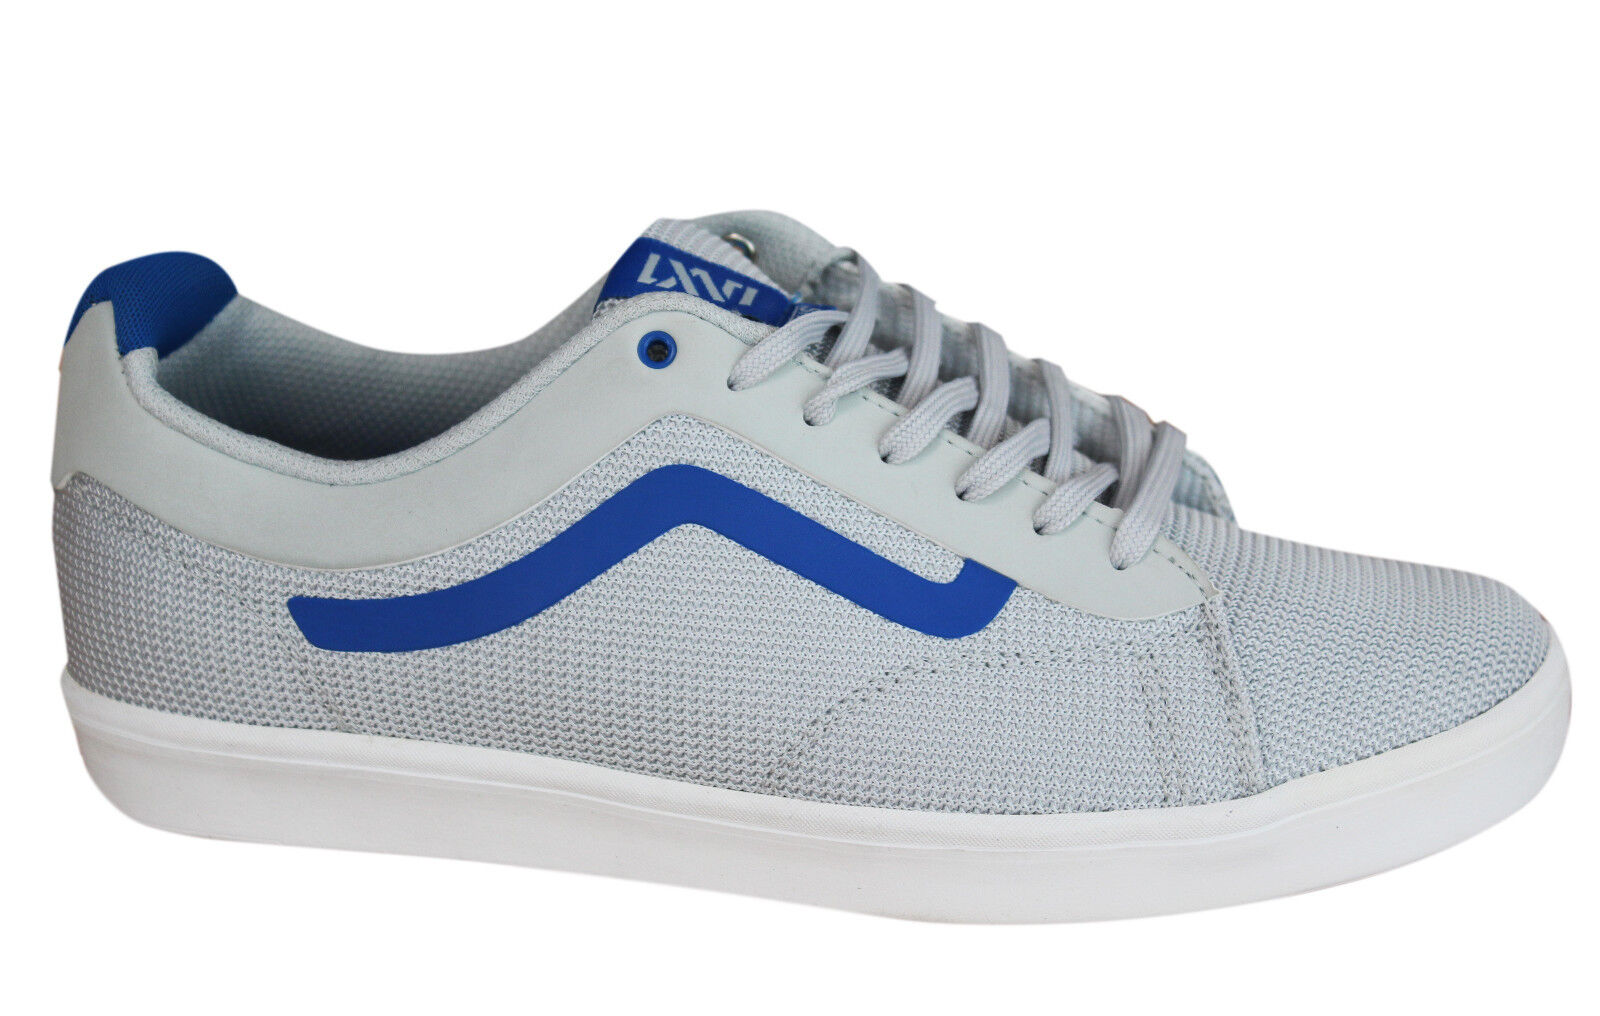 d7472195561c Vans Off The Wall Ortho Mens Trainers Lace Up Shoes Grey Blue ...